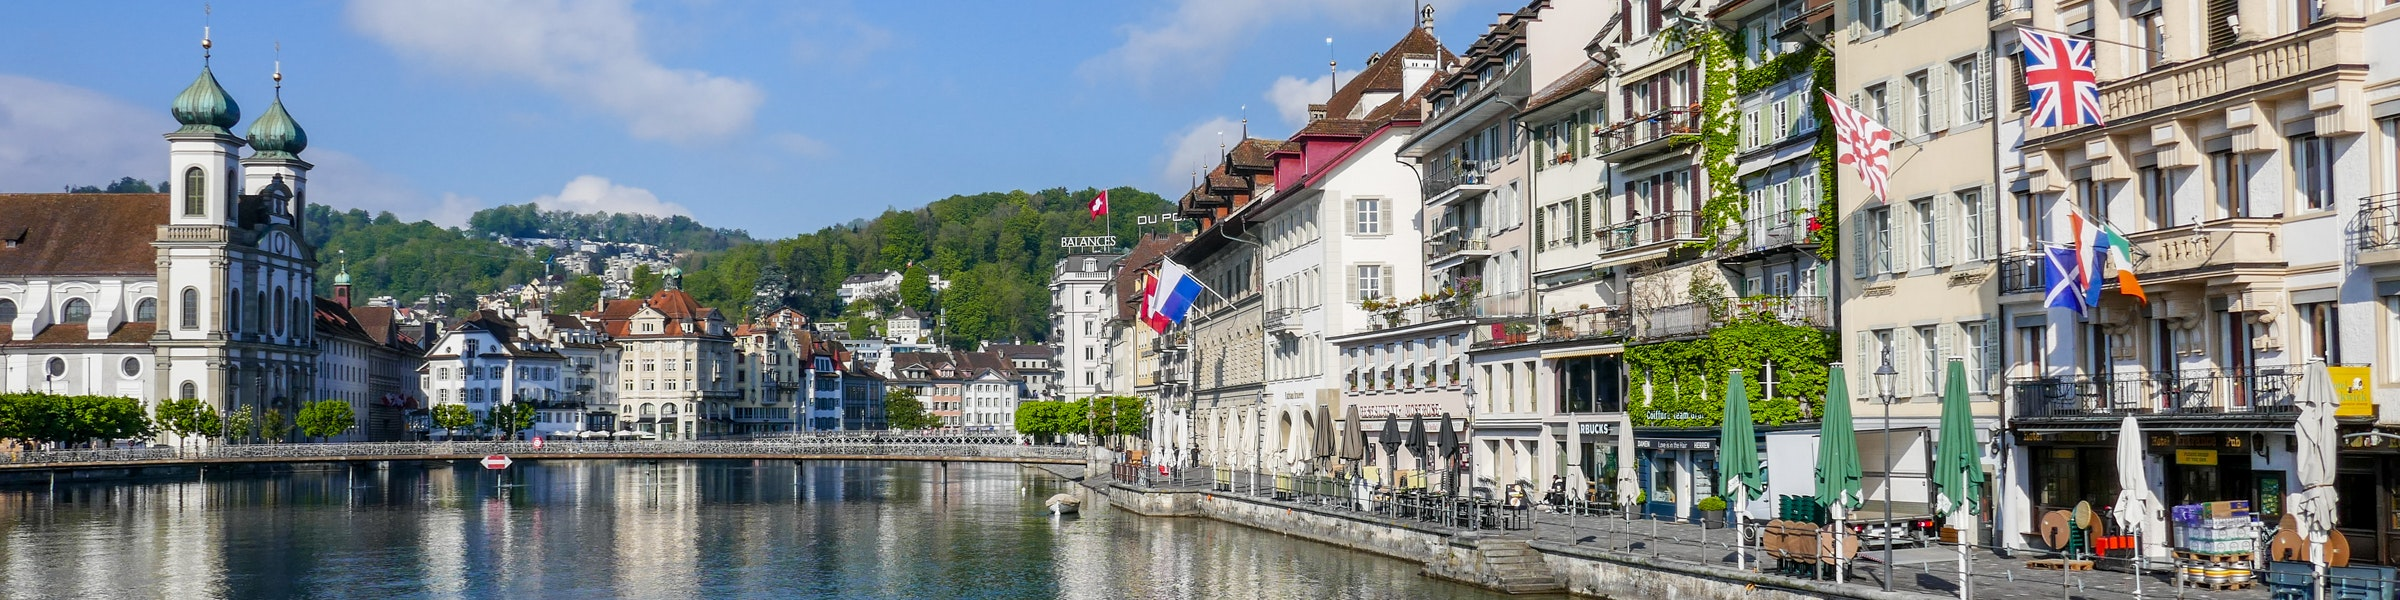 Hotels in Luzern aan rivier Reuss